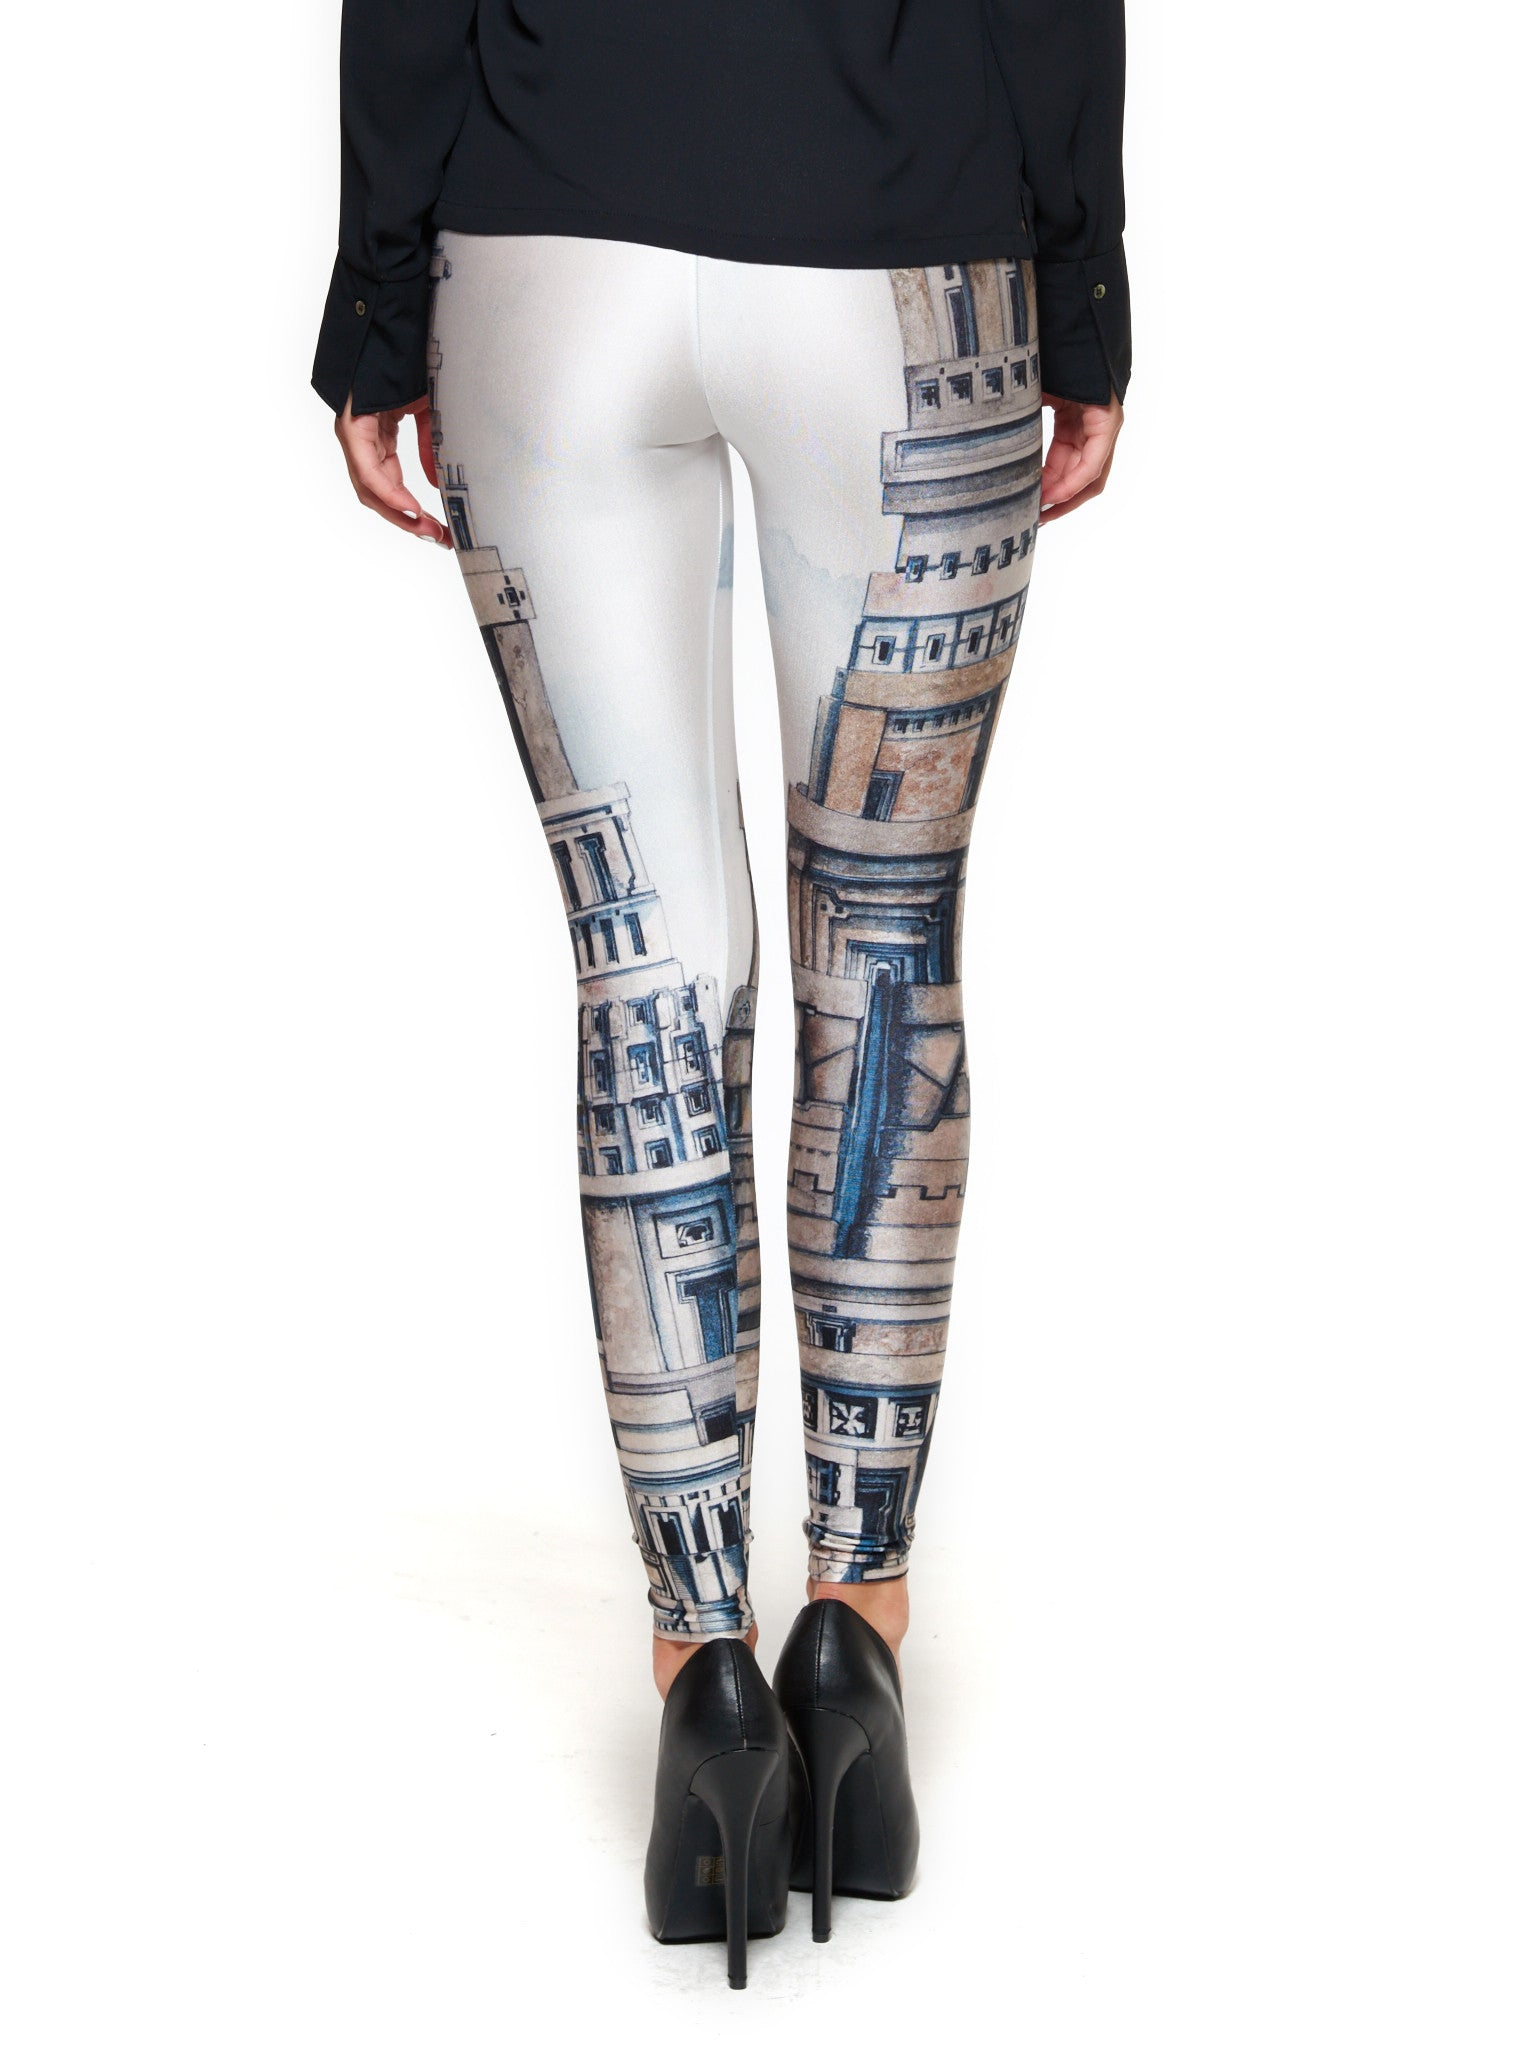 The Door of Stone Queen West Leggings - Nuvango Gallery & Goods - 3